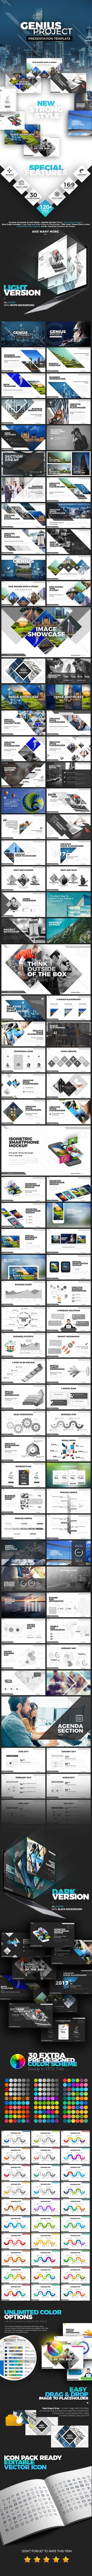 Genius Project Presentation Template - Business PowerPoint Templates